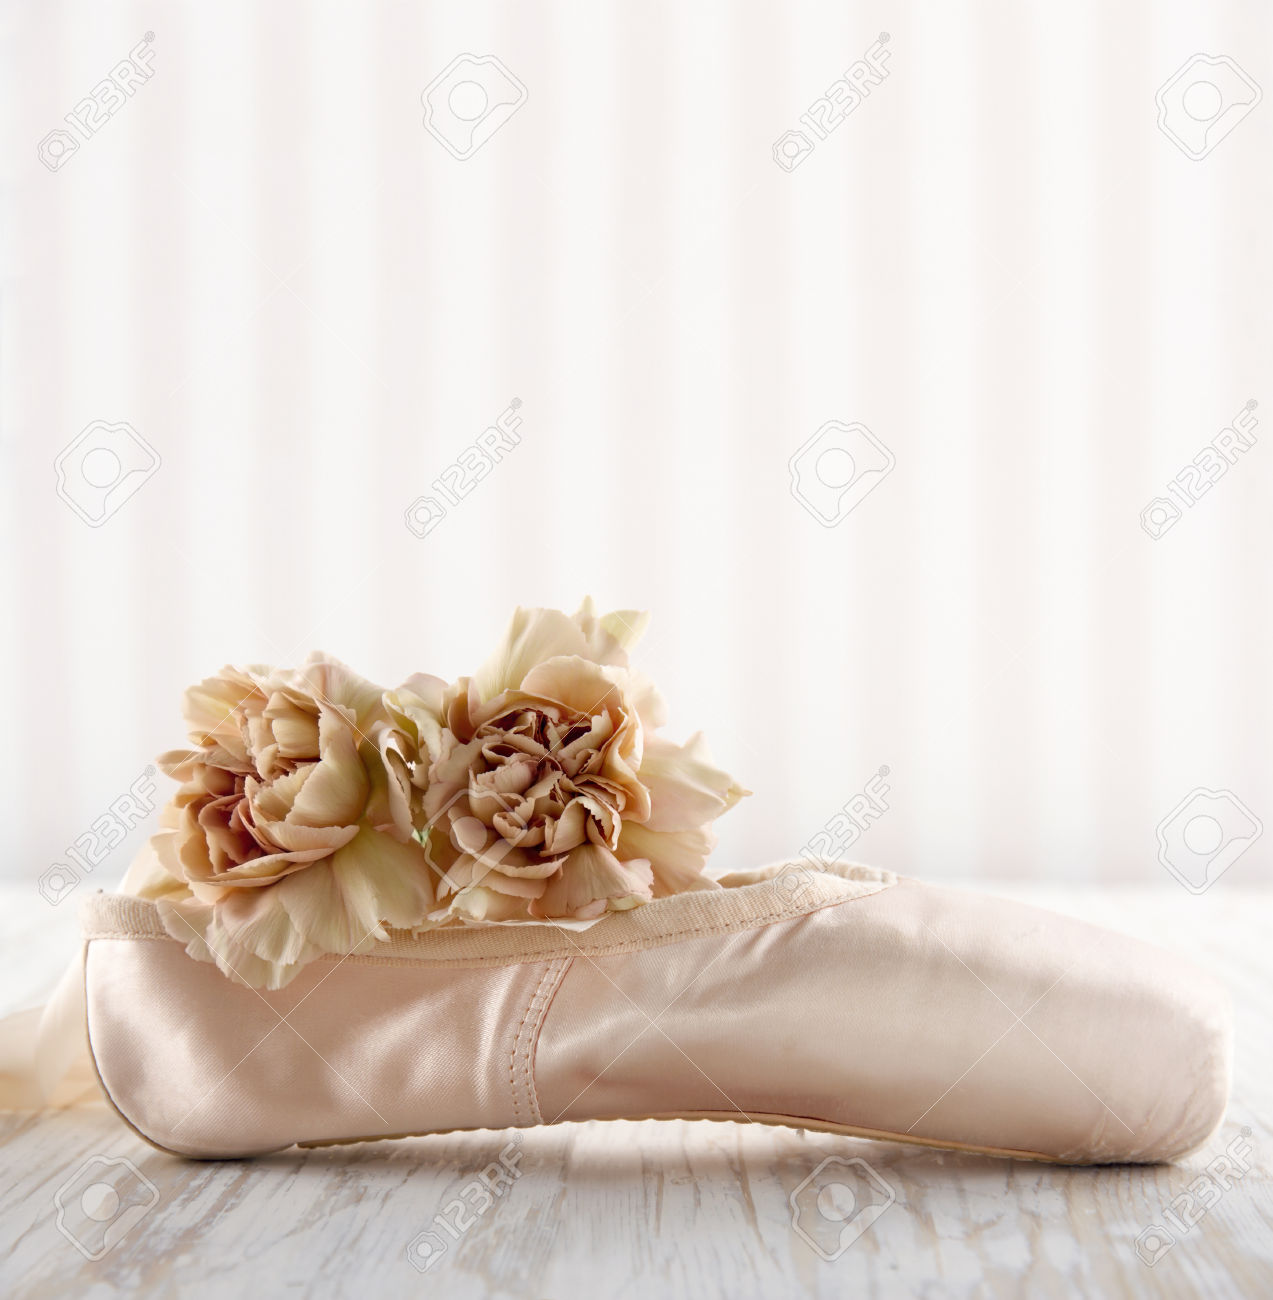 Cute Dog Full Hd Wallpaper Download Pointe Shoes Wallpaper Gallery